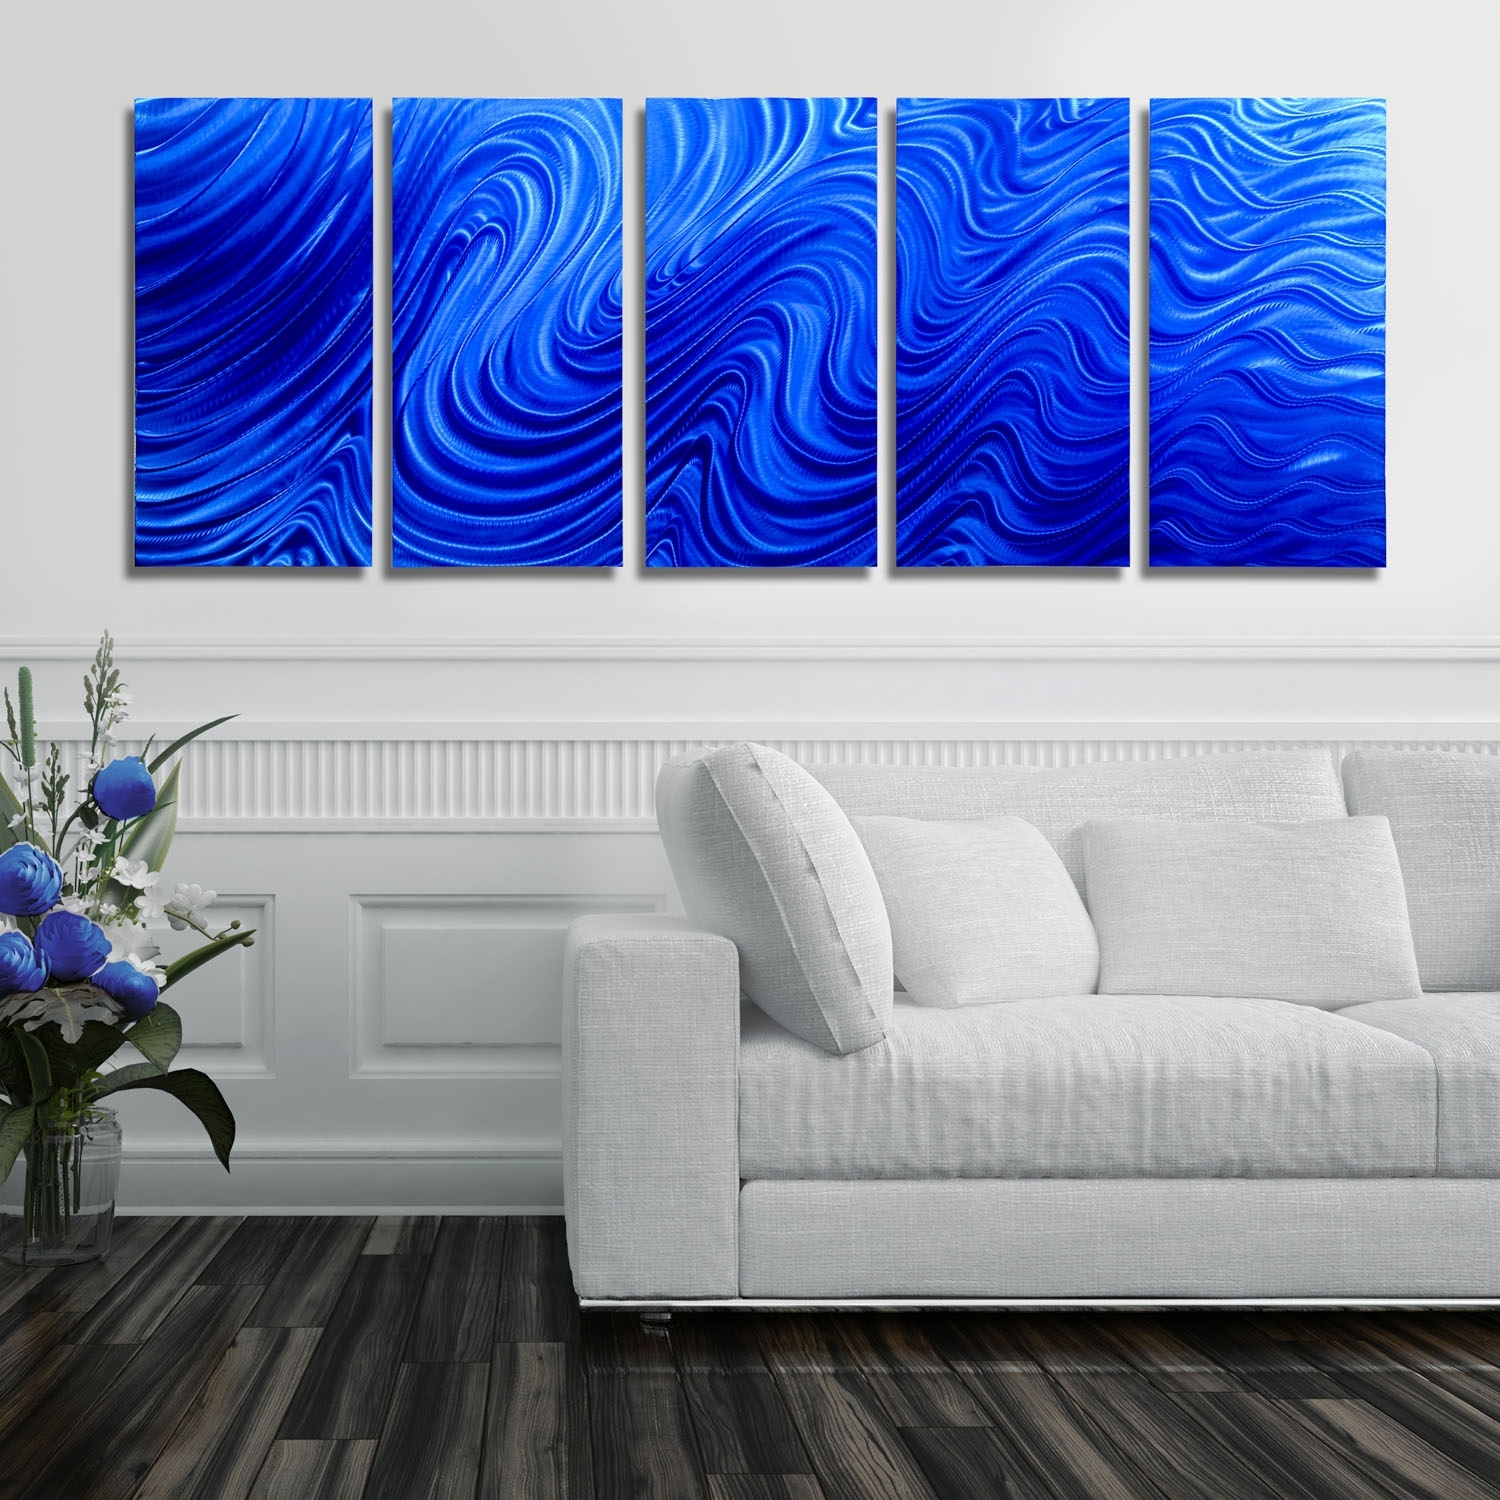 Blue Hypnotic Sands – Blue Four Panel Abstract Metal Wall Art Inside Best And Newest Abstract Metal Wall Art Panels (View 4 of 20)